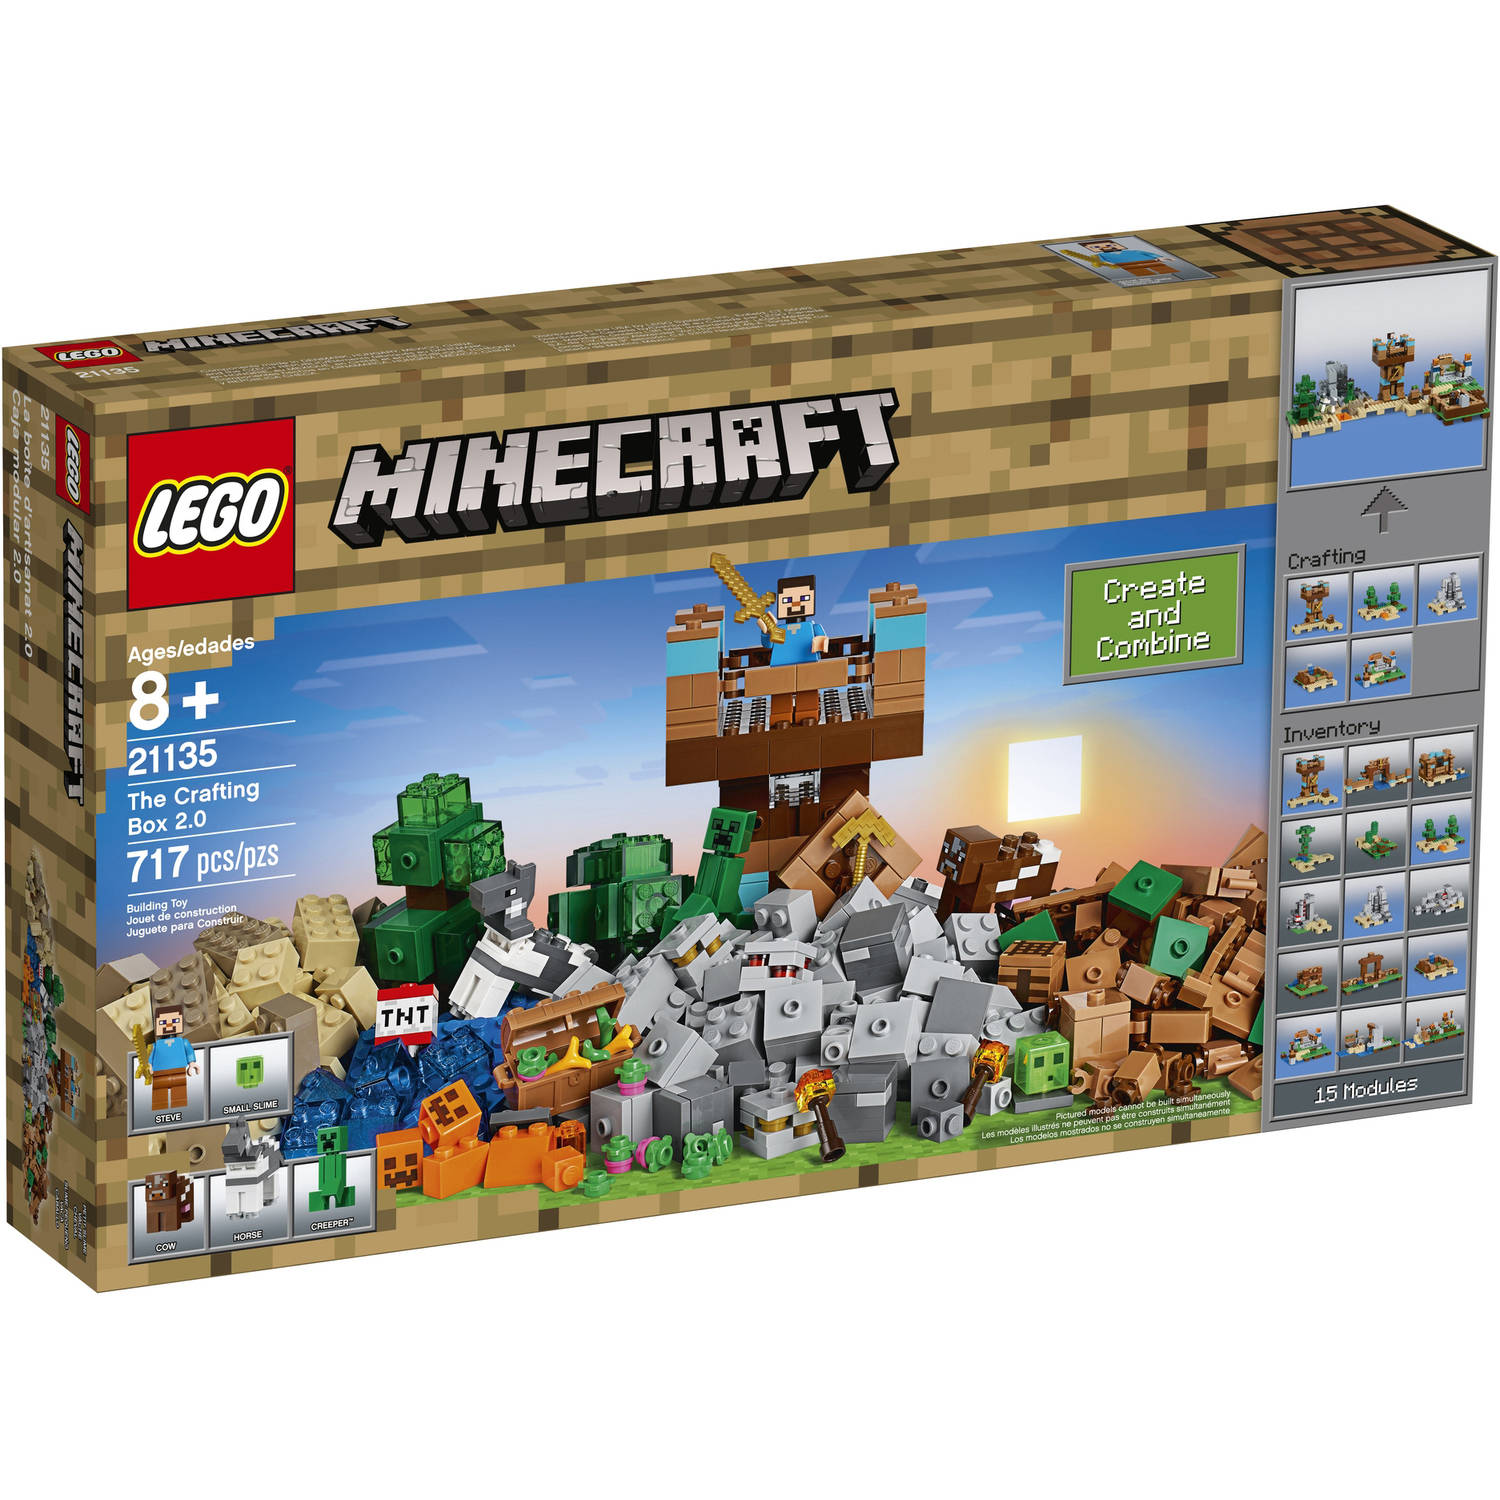 Lego Minecraft The Crafting Box 2.0 21135 by LEGO Systems, Inc.